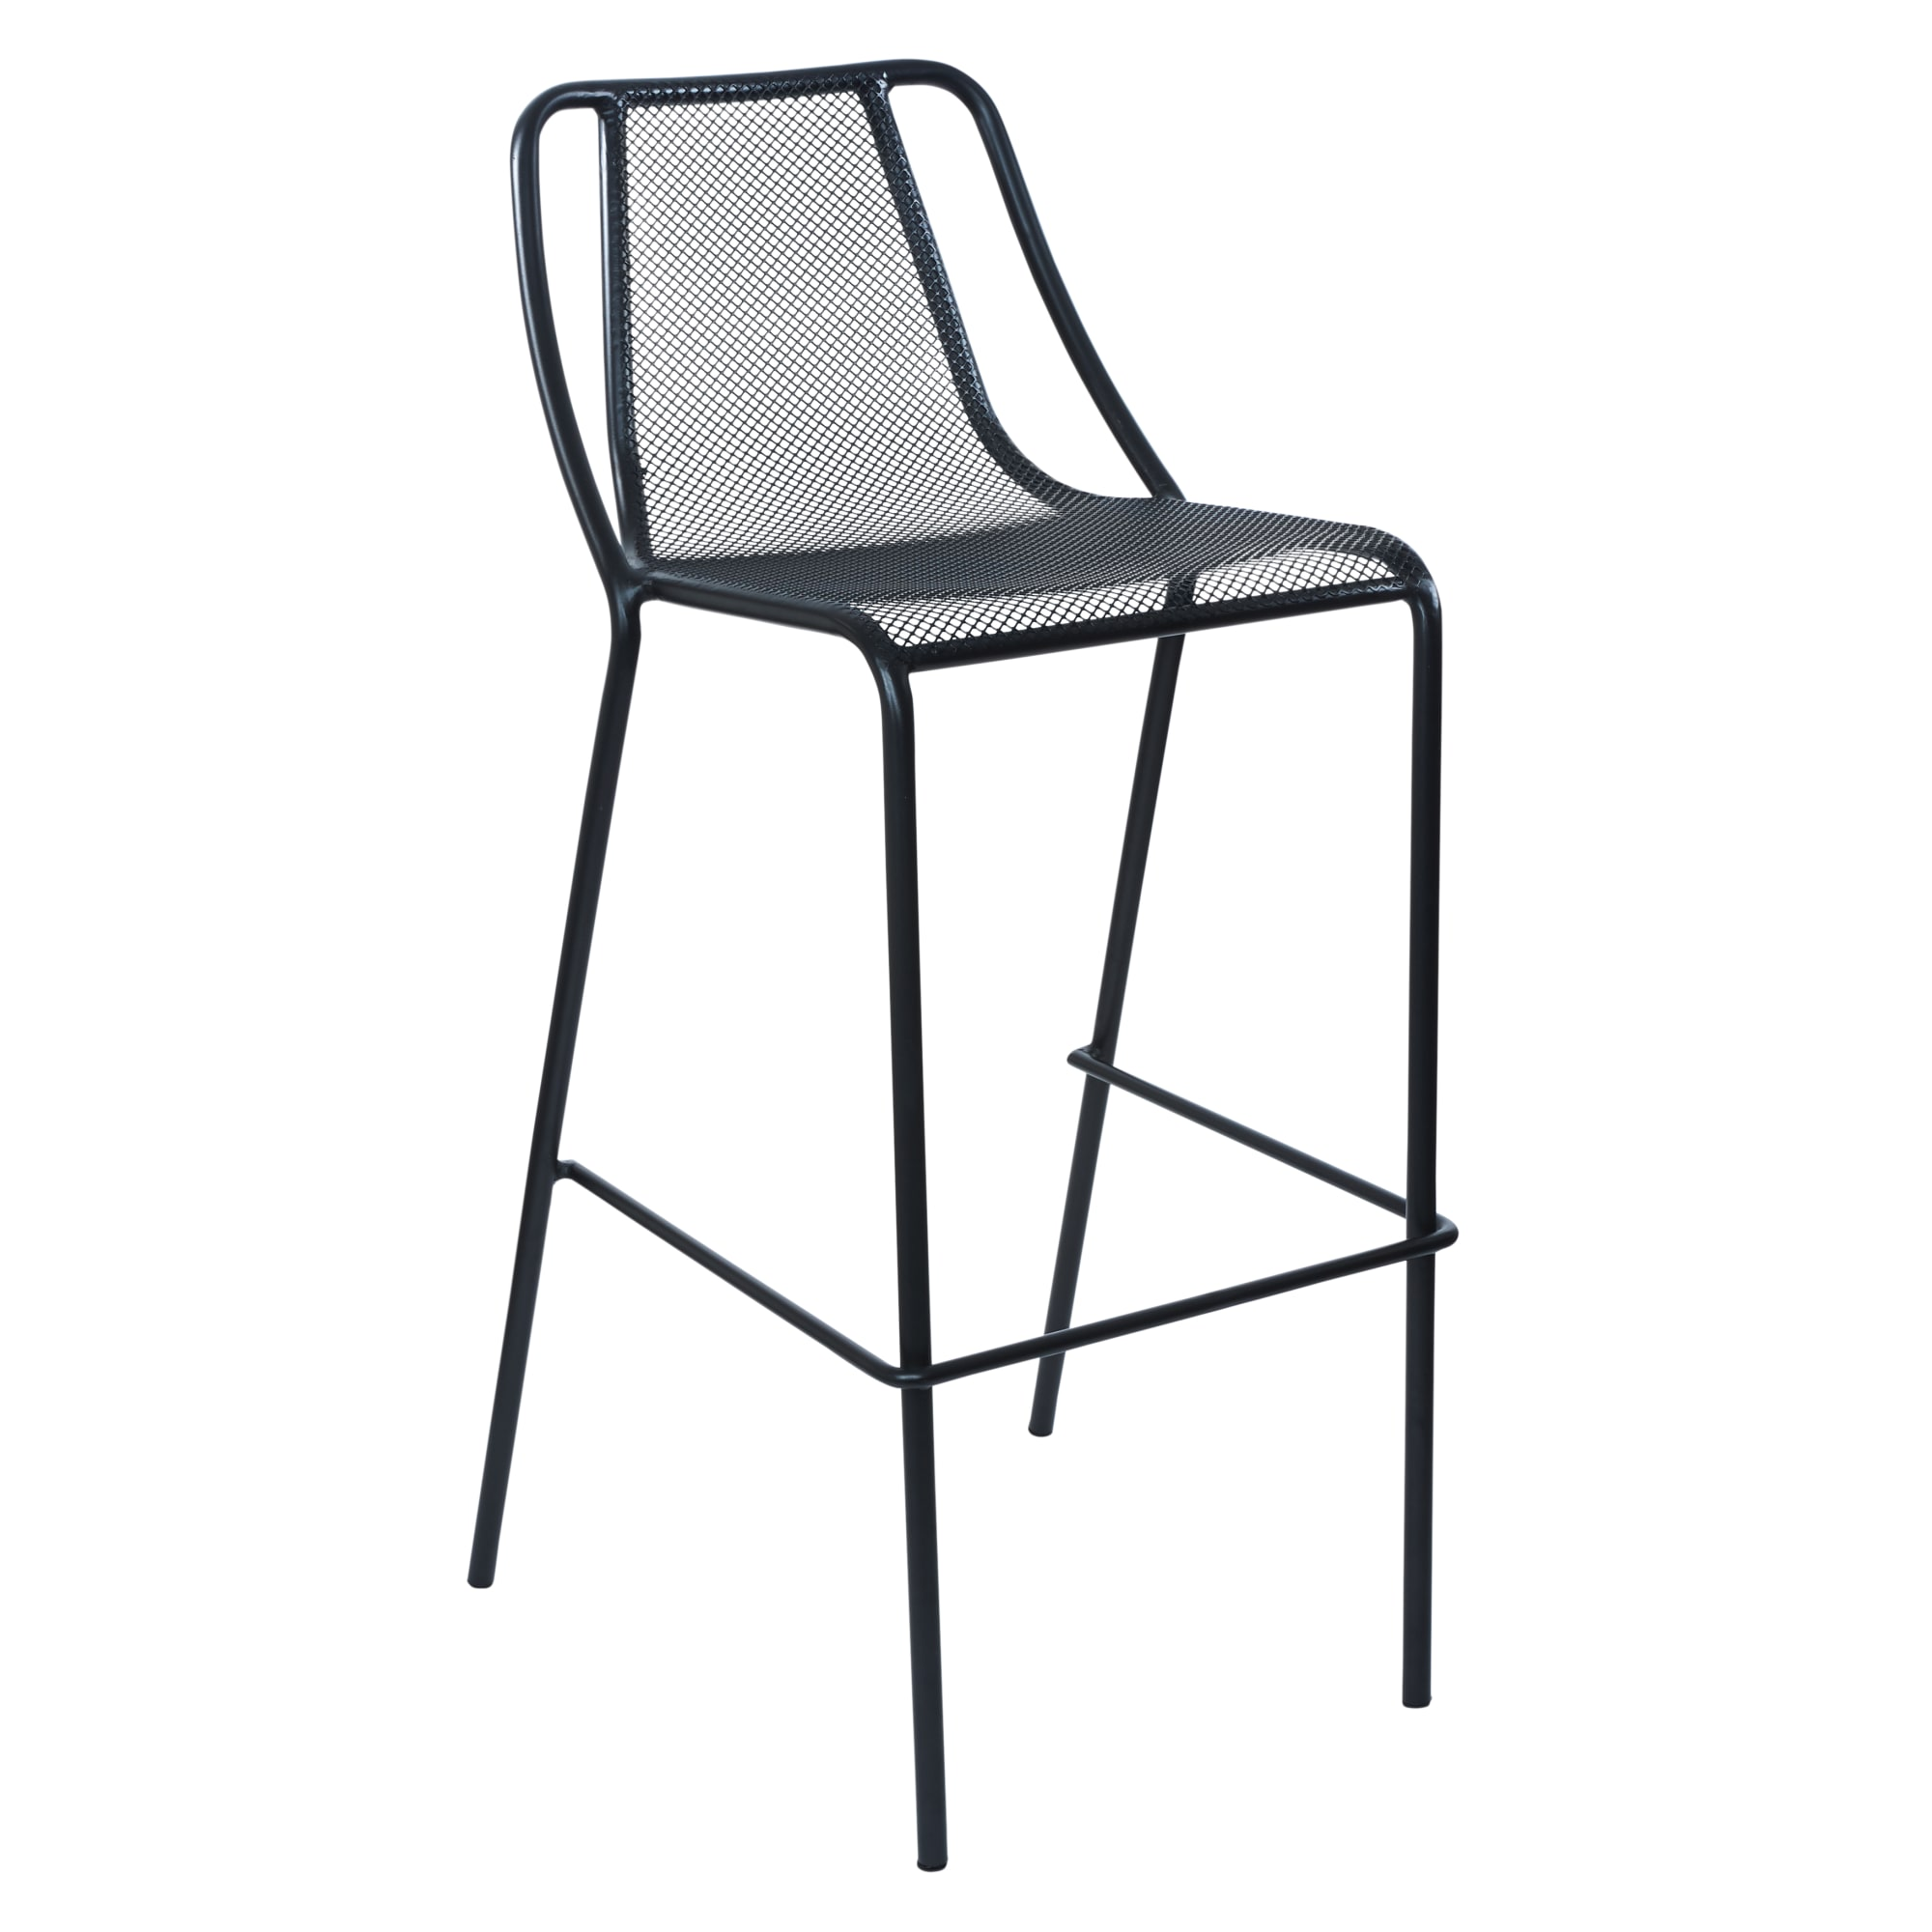 Modern Metal Mesh Outdoor Bar Stool